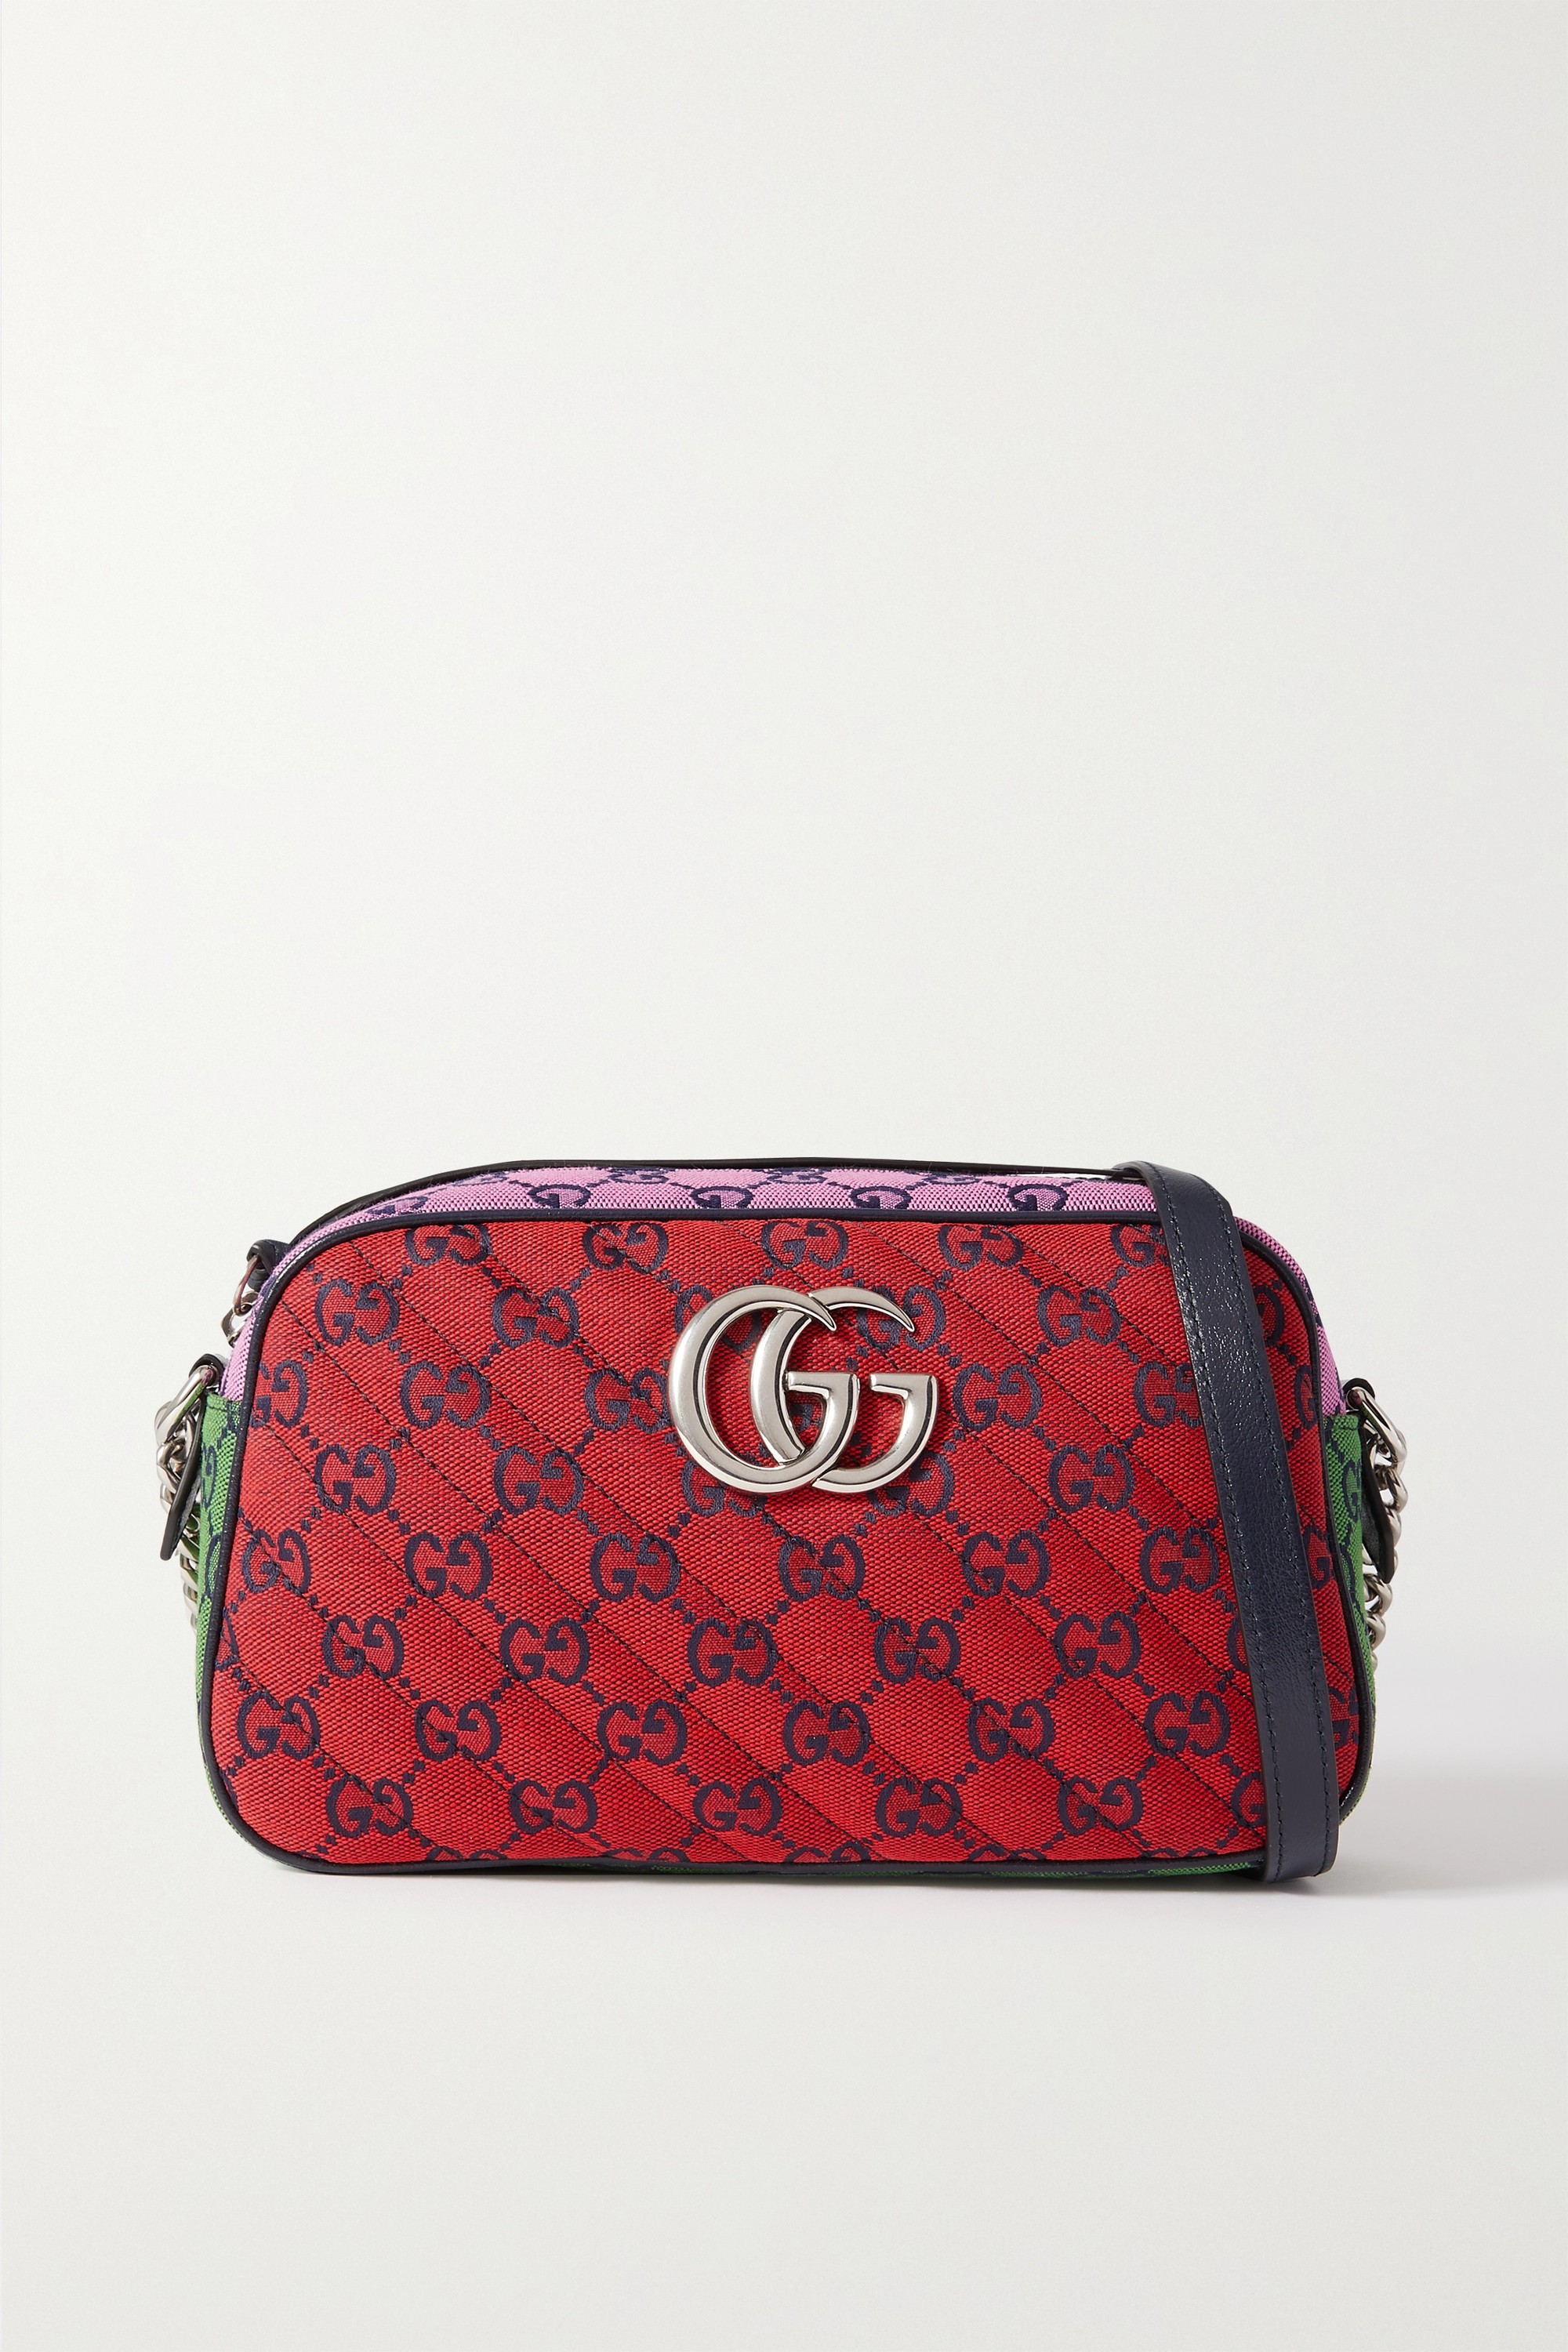 Gucci GG Marmont Multicolour Camera 2.0 small quilted logo-jacquard shoulder bag